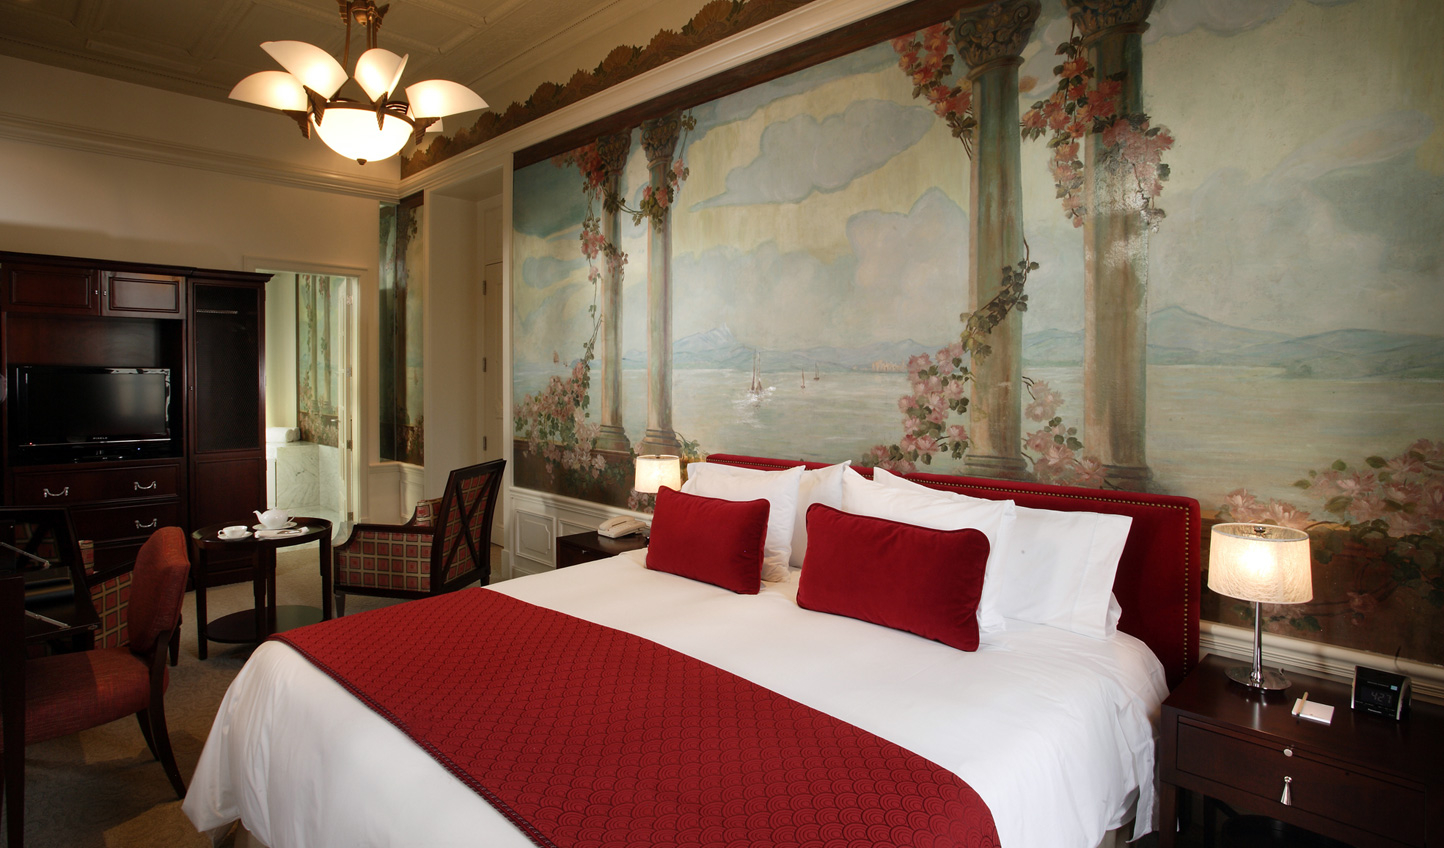 Beautiful design features like murals decorate the rooms